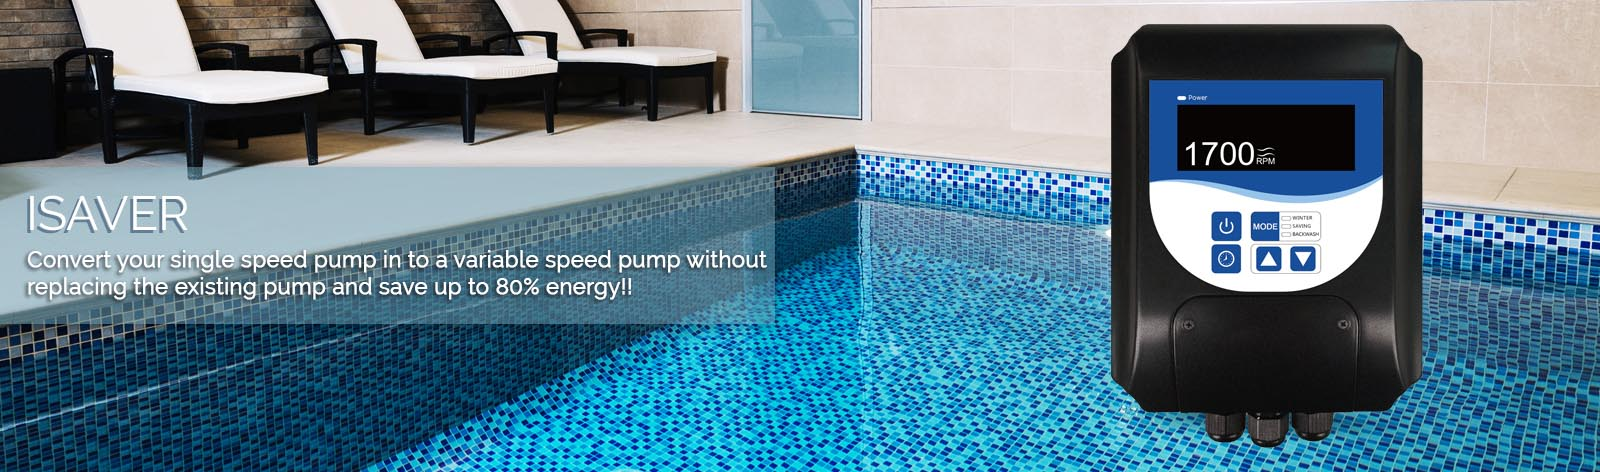 Buy Discounted swimming Pool Equipments, accessories Supplies in